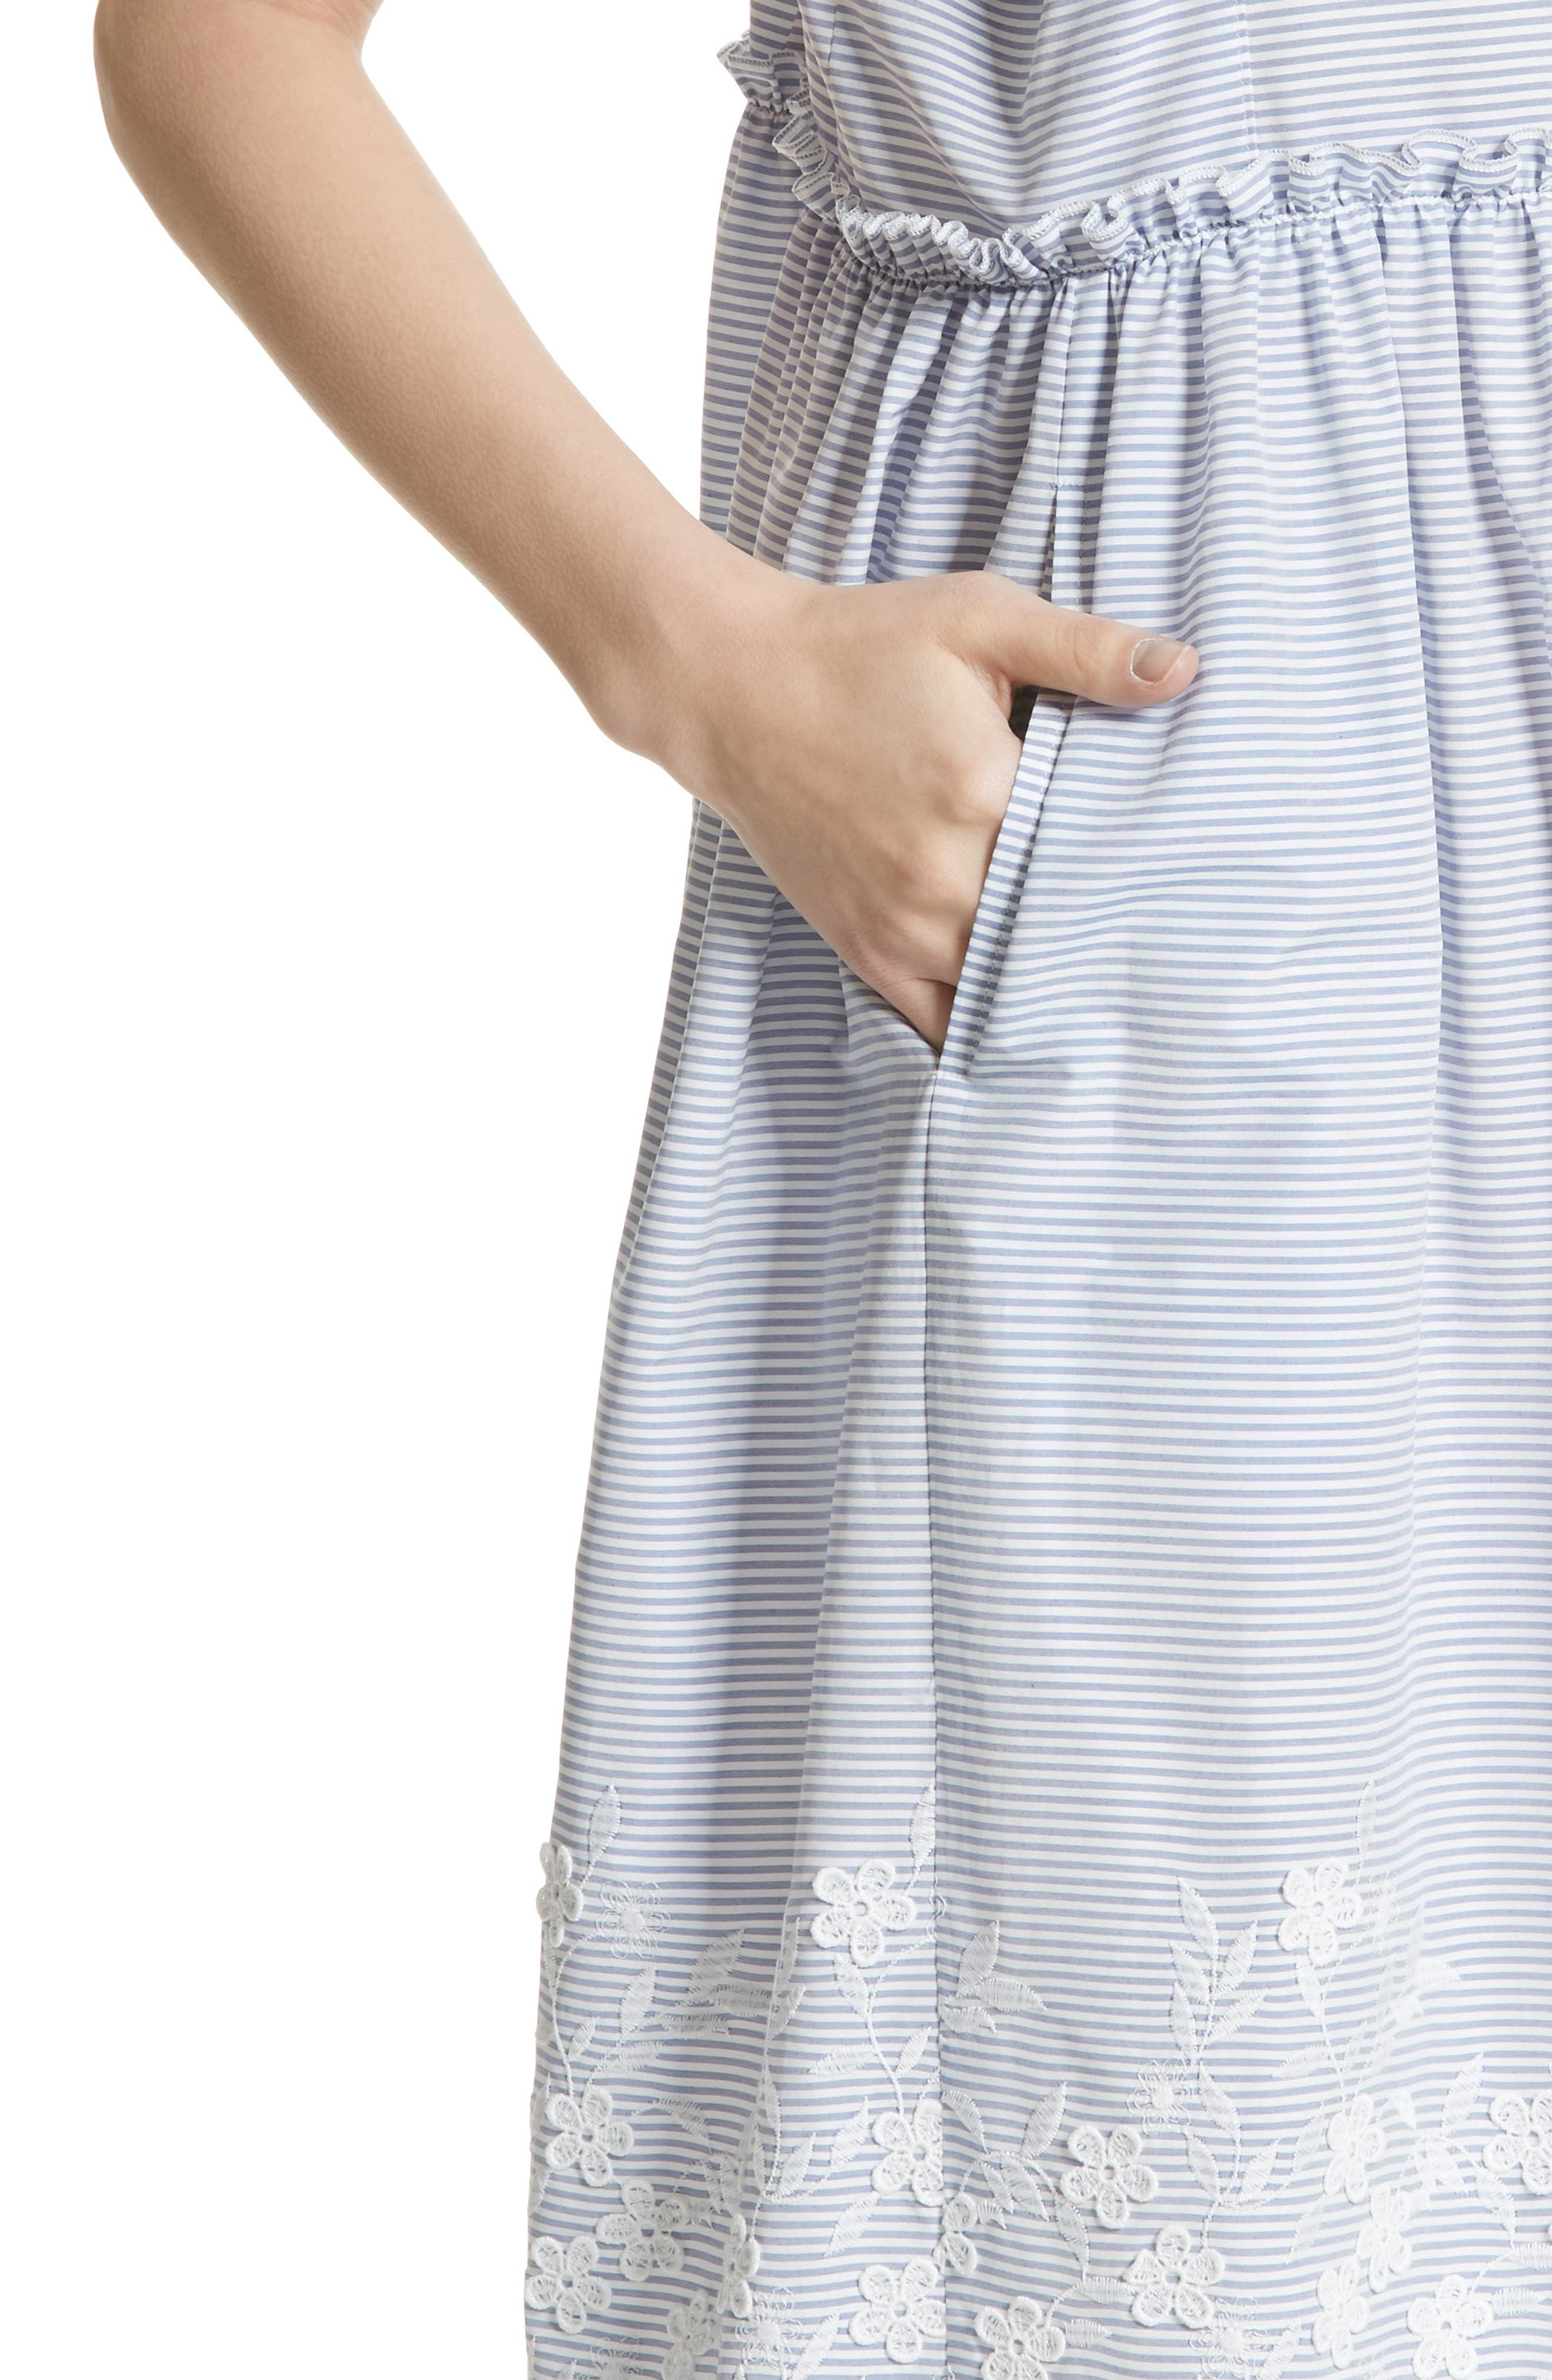 Floral Embroidered Stripe Shift Dress,                             Alternate thumbnail 7, color,                             Wide Stripe